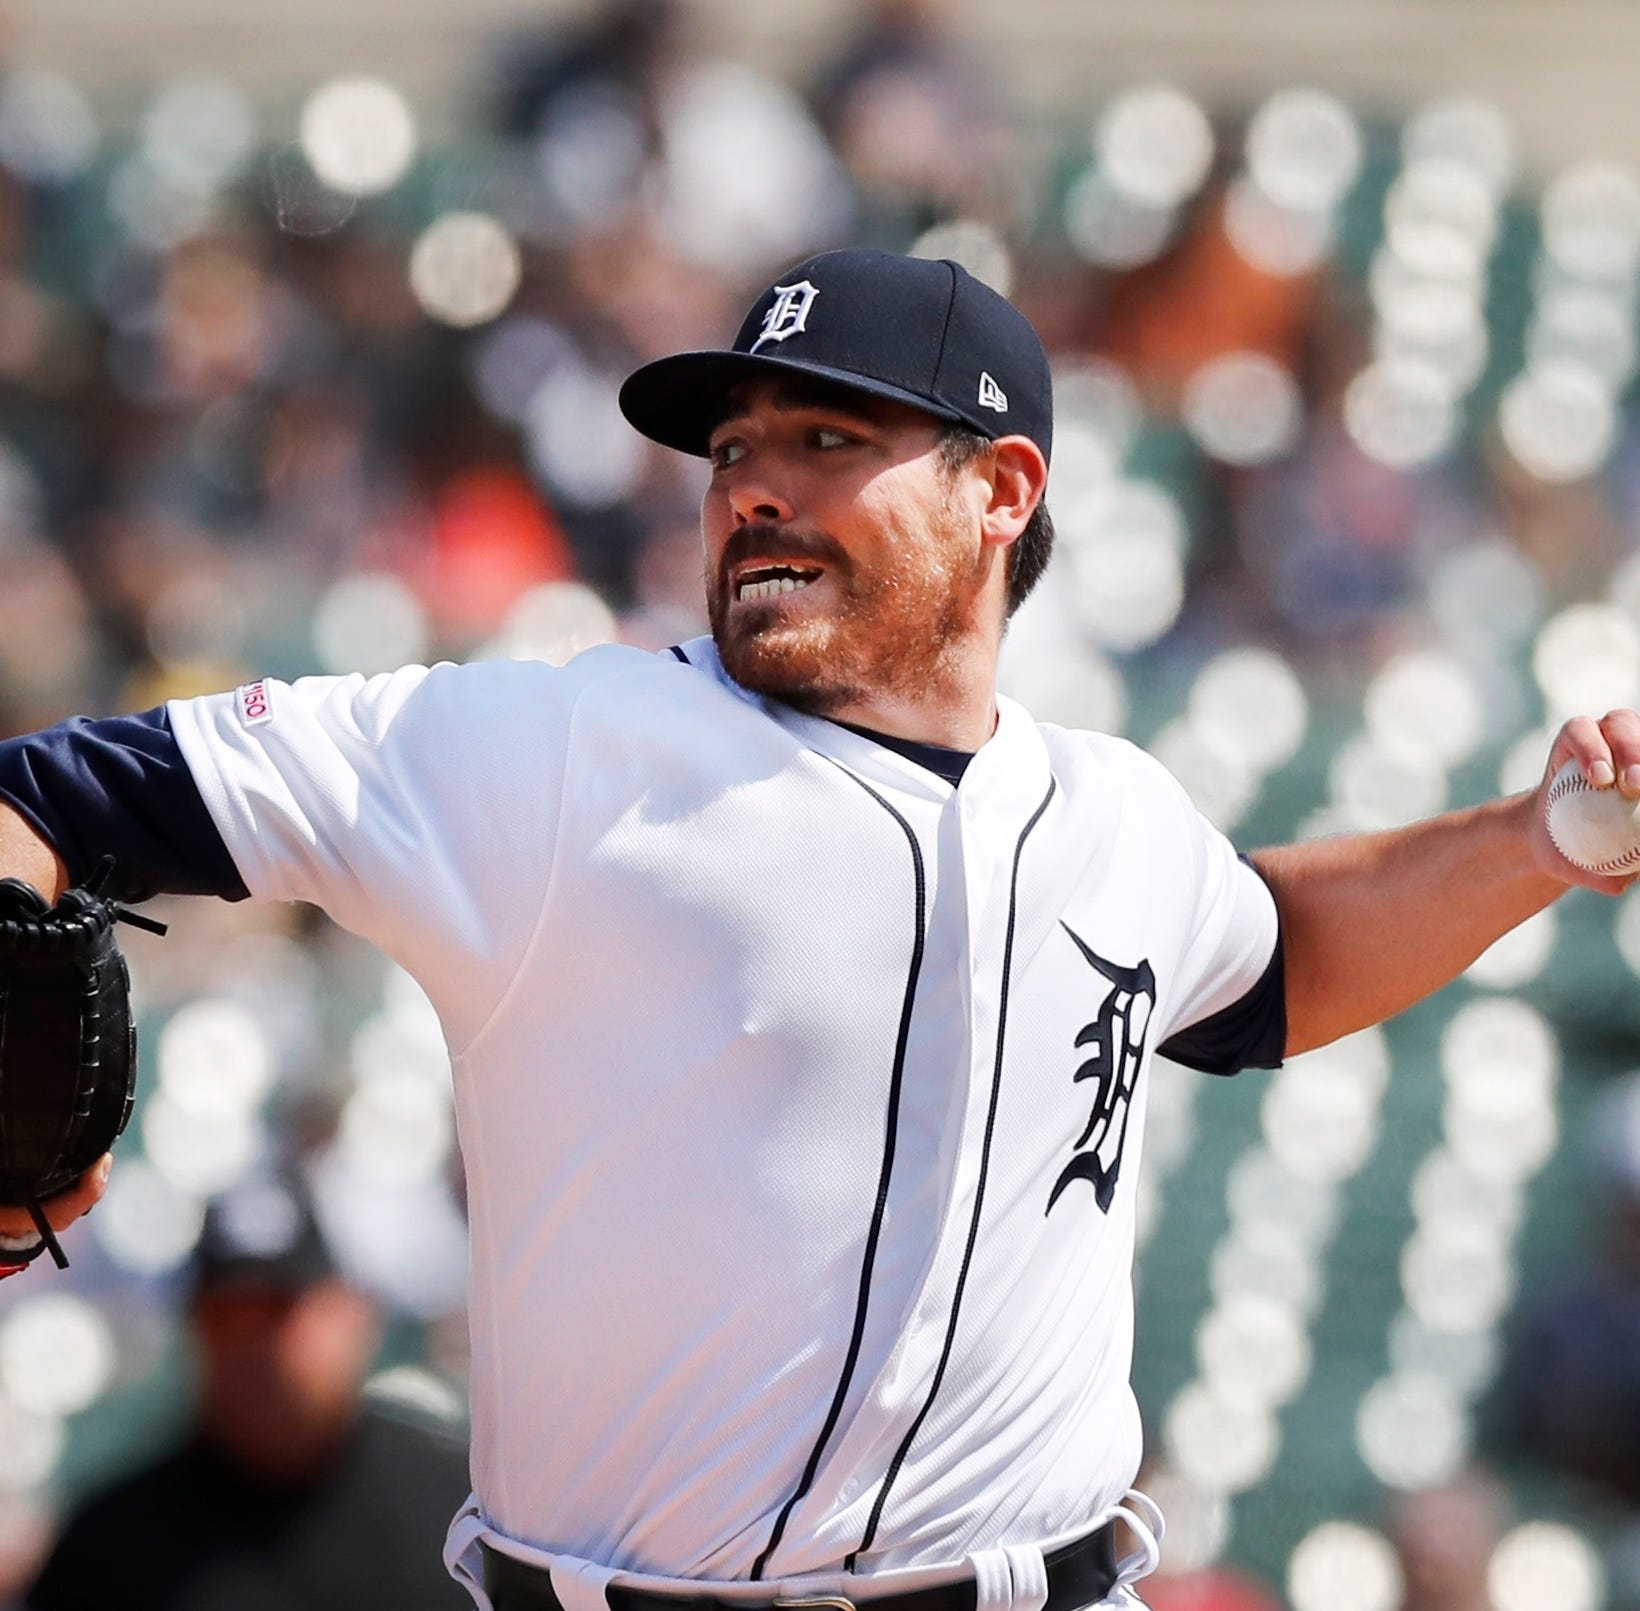 Detroit Tigers' Matt Moore placed on injured list with right knee sprain